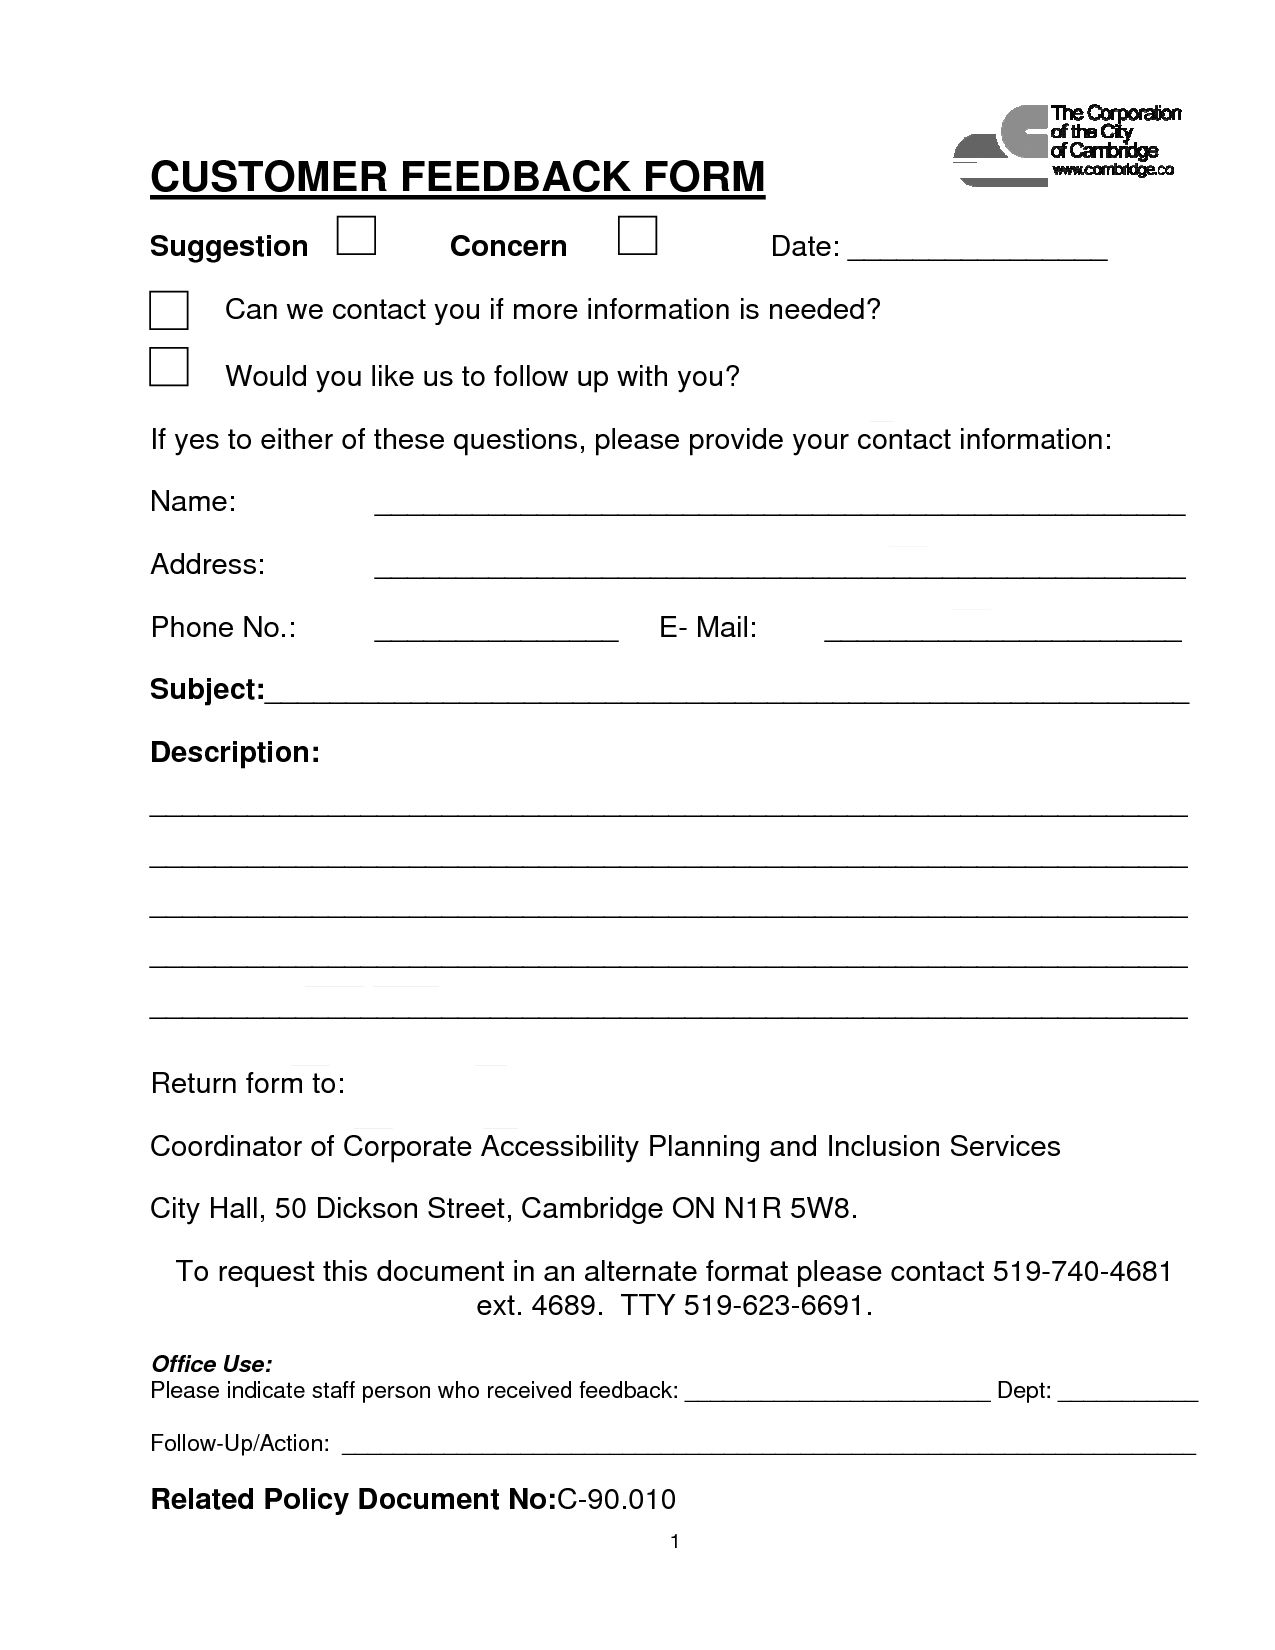 The Wonderful Customer Contact Form Customer Feedback Form Pdf Download Throughout Student Feedback Feedback For Students Survey Template Customer Feedback